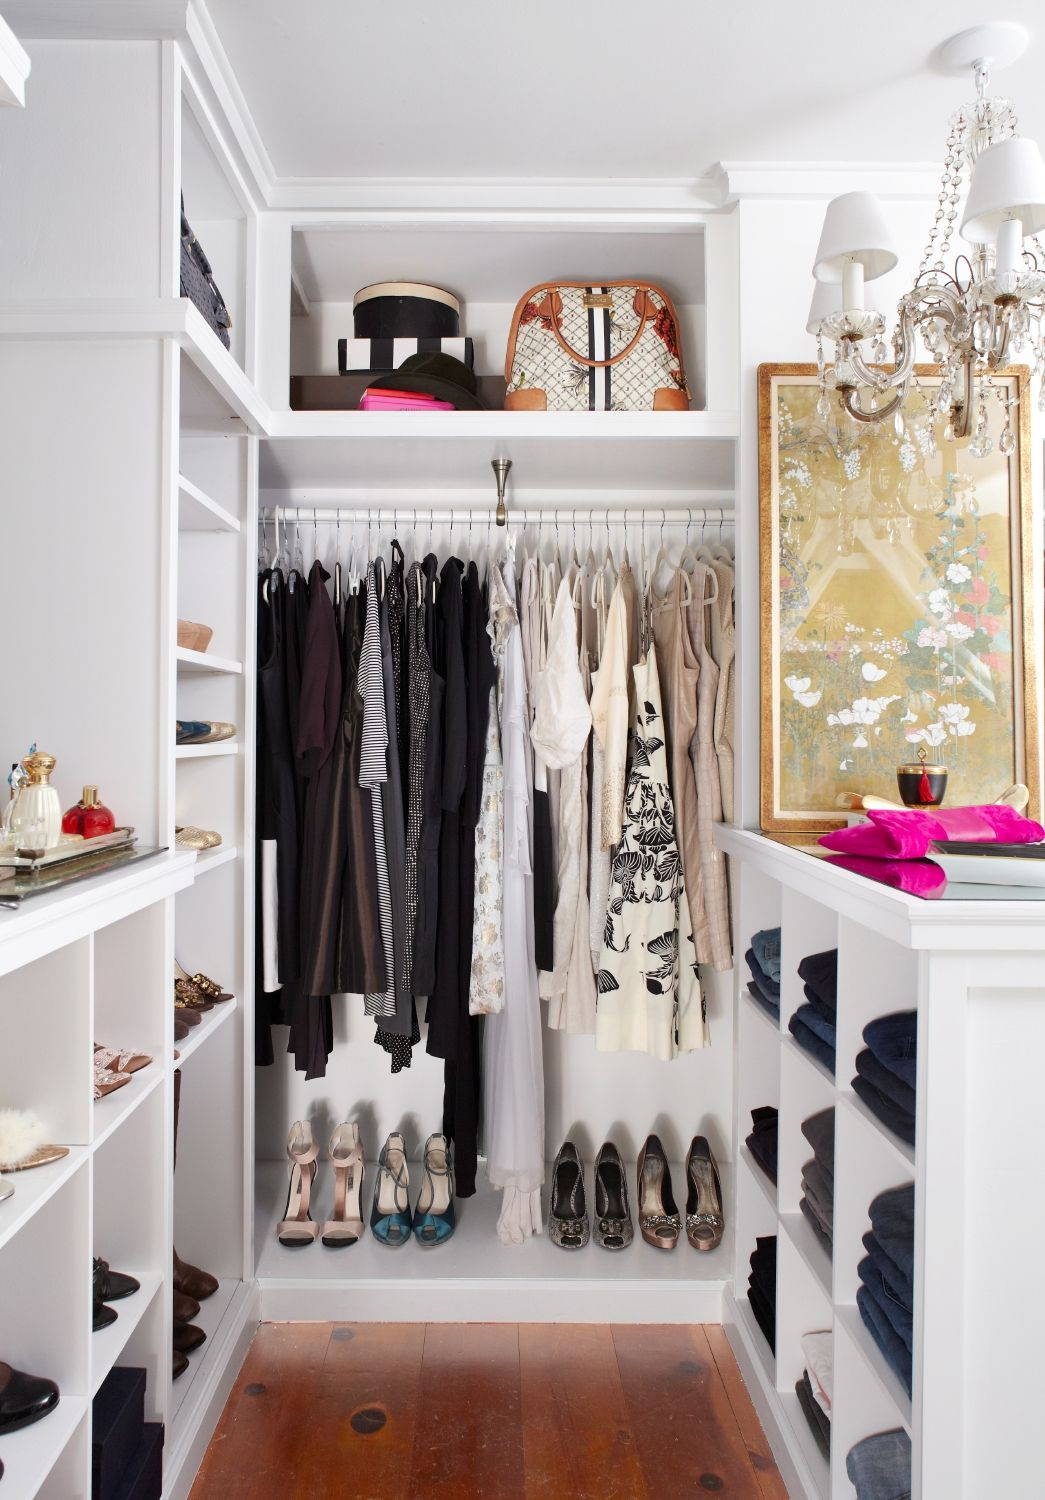 12 small walk in closet ideas and organizer designs for Closet vanity ideas